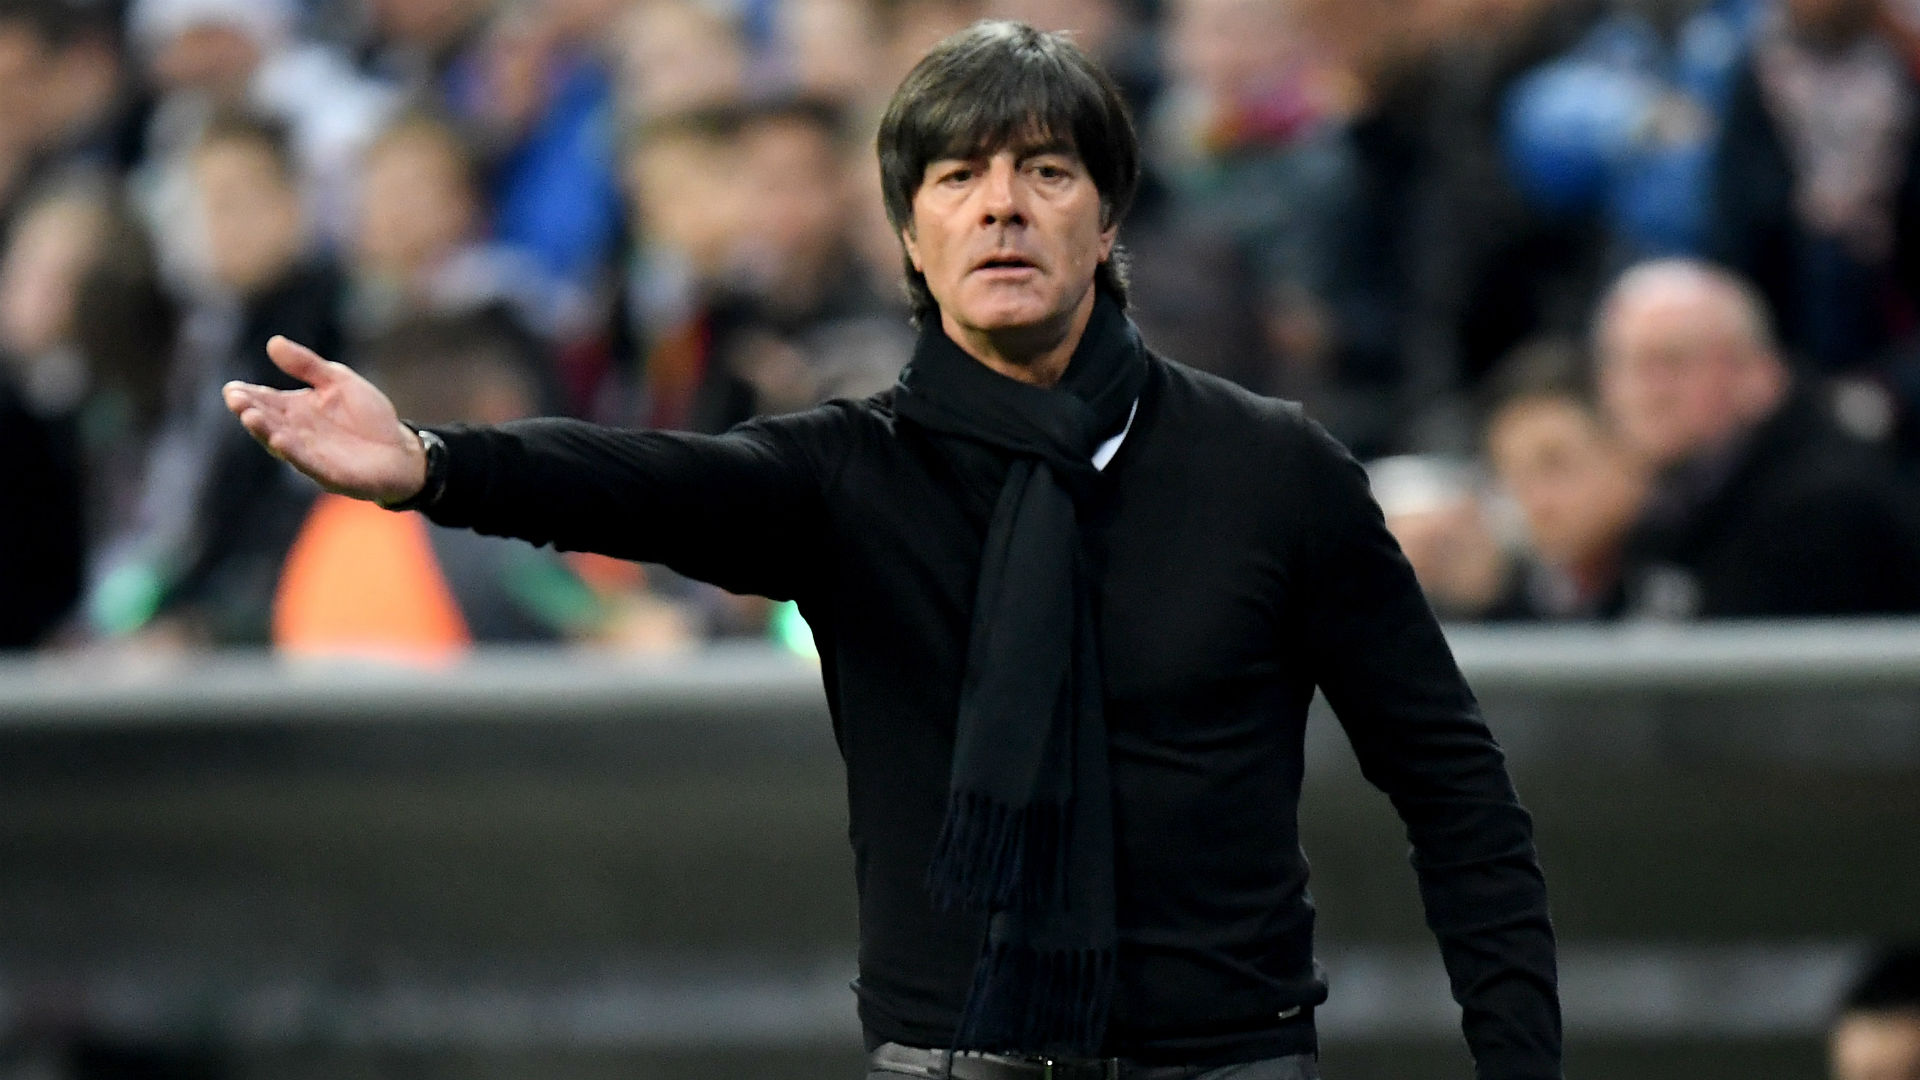 Euros newcomers are having tournament of their lives, says Joachim Low